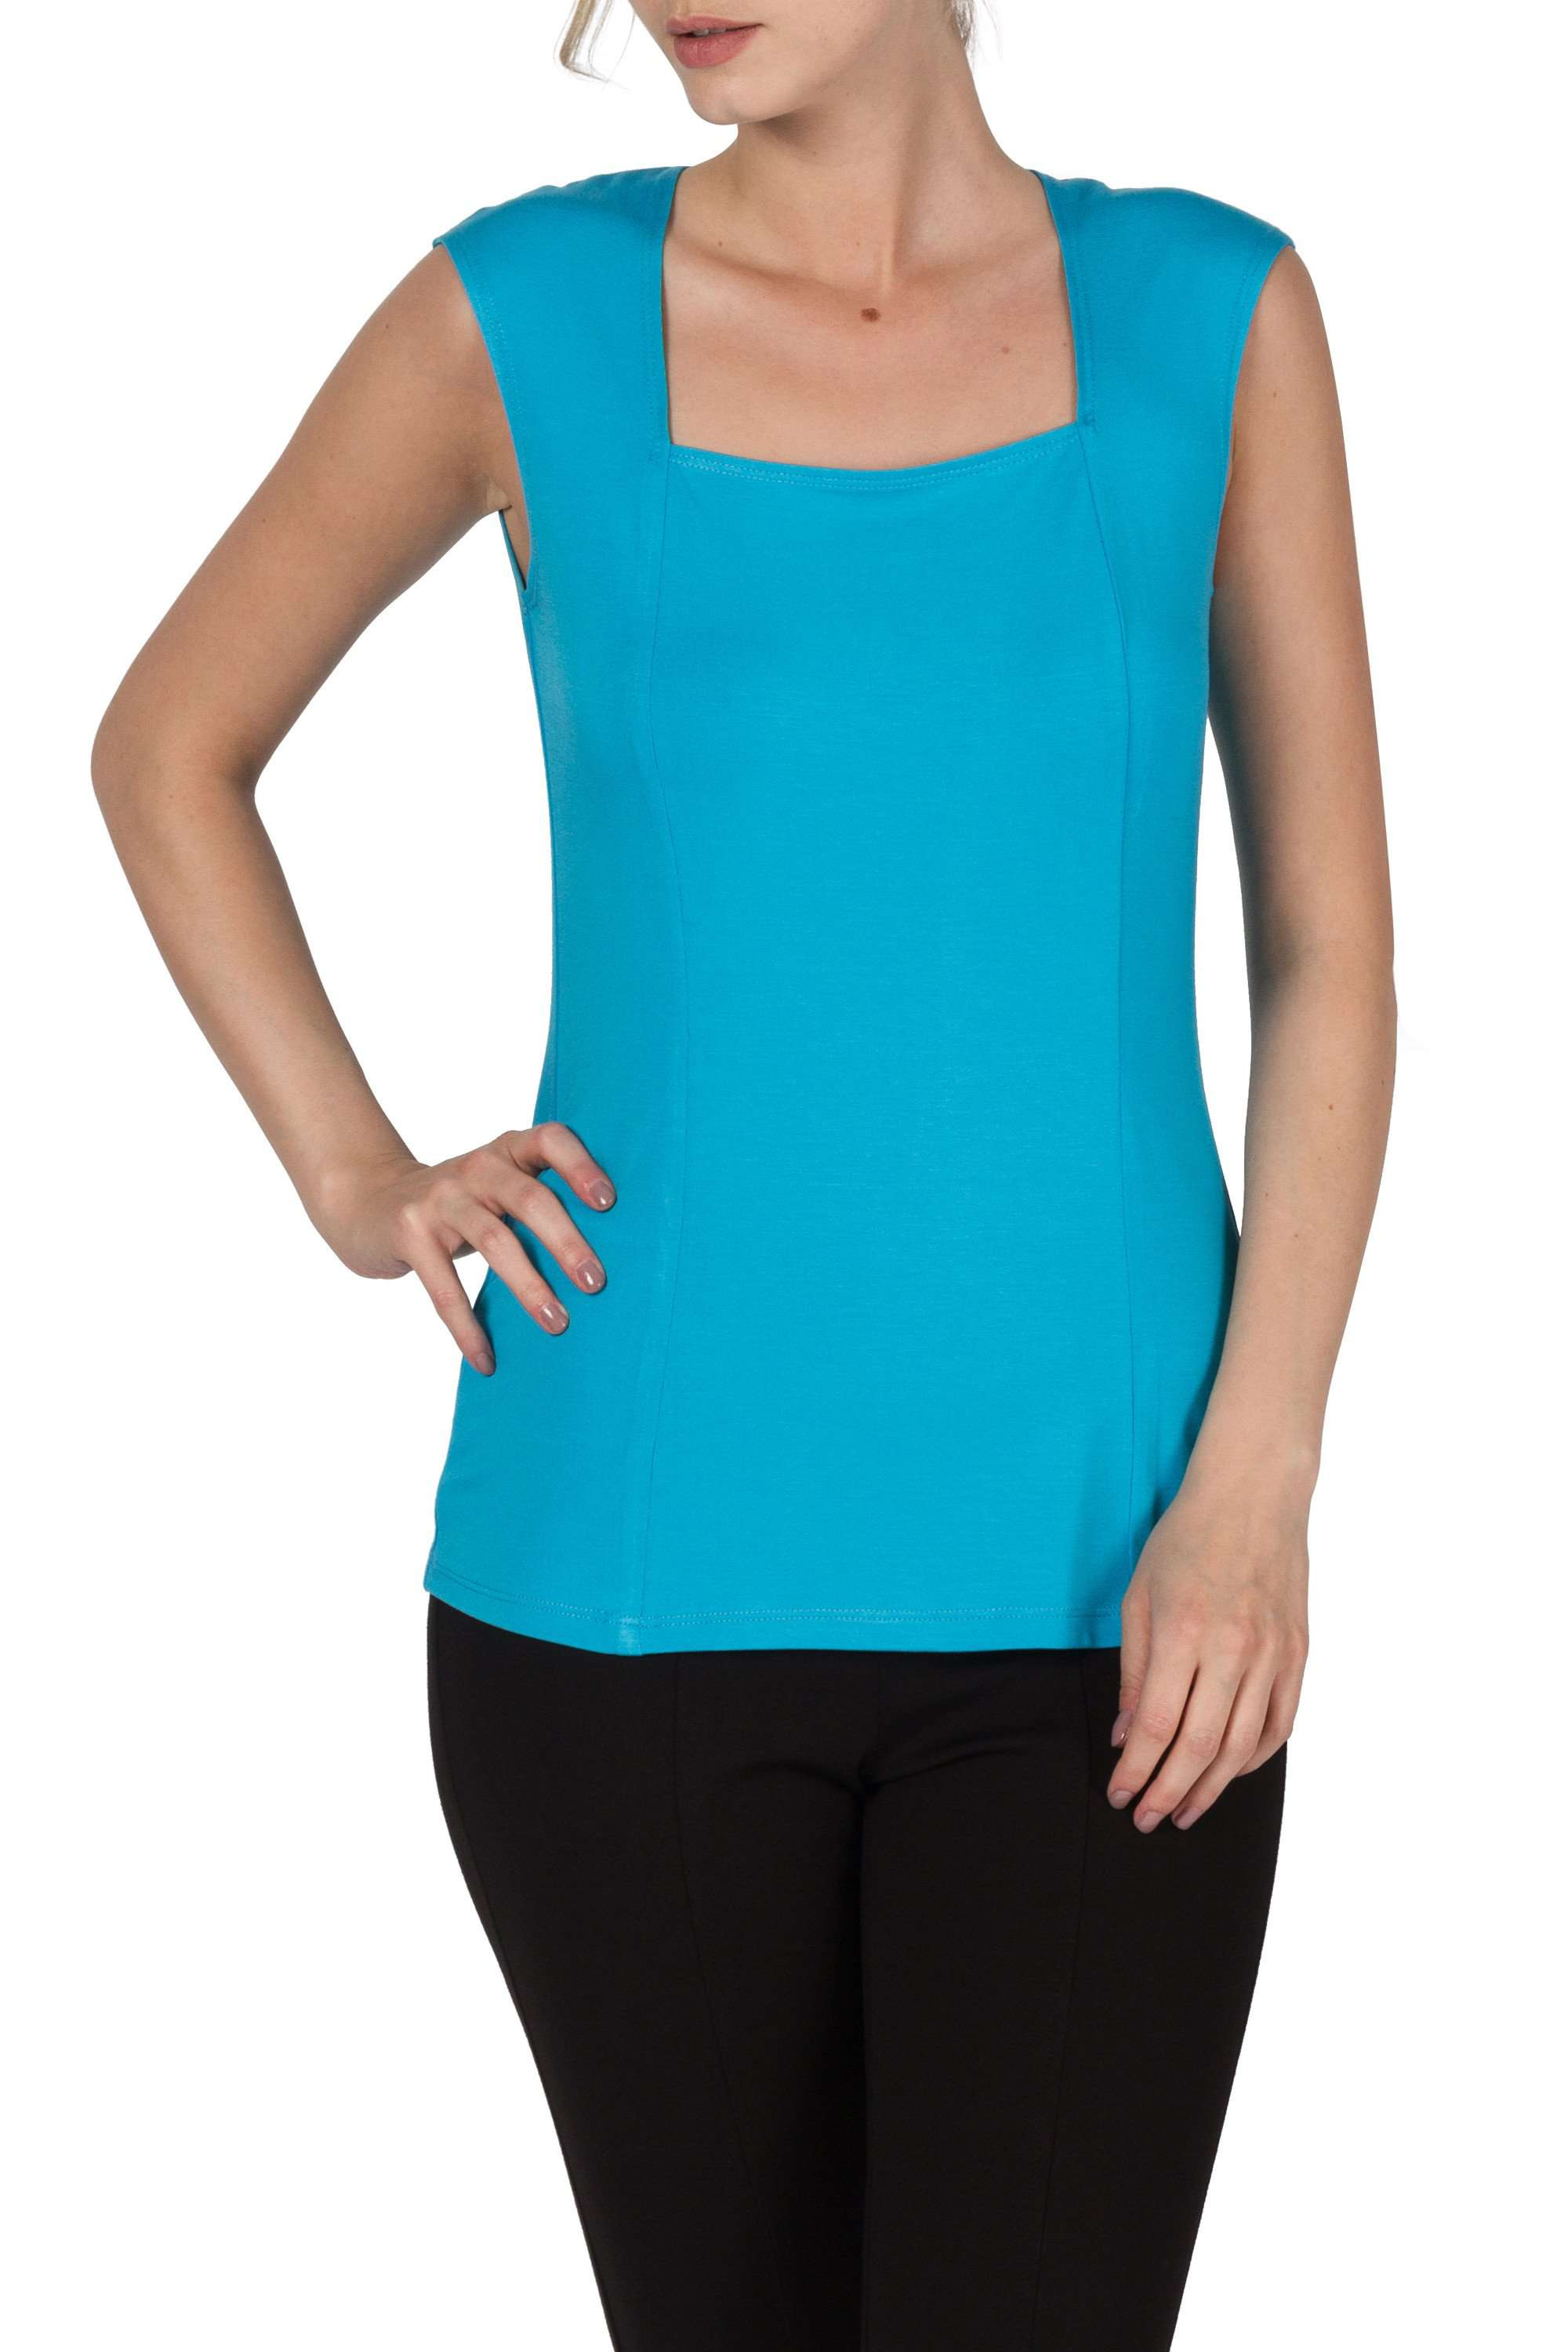 Women's Turquoise Camisole - Yvonne Marie